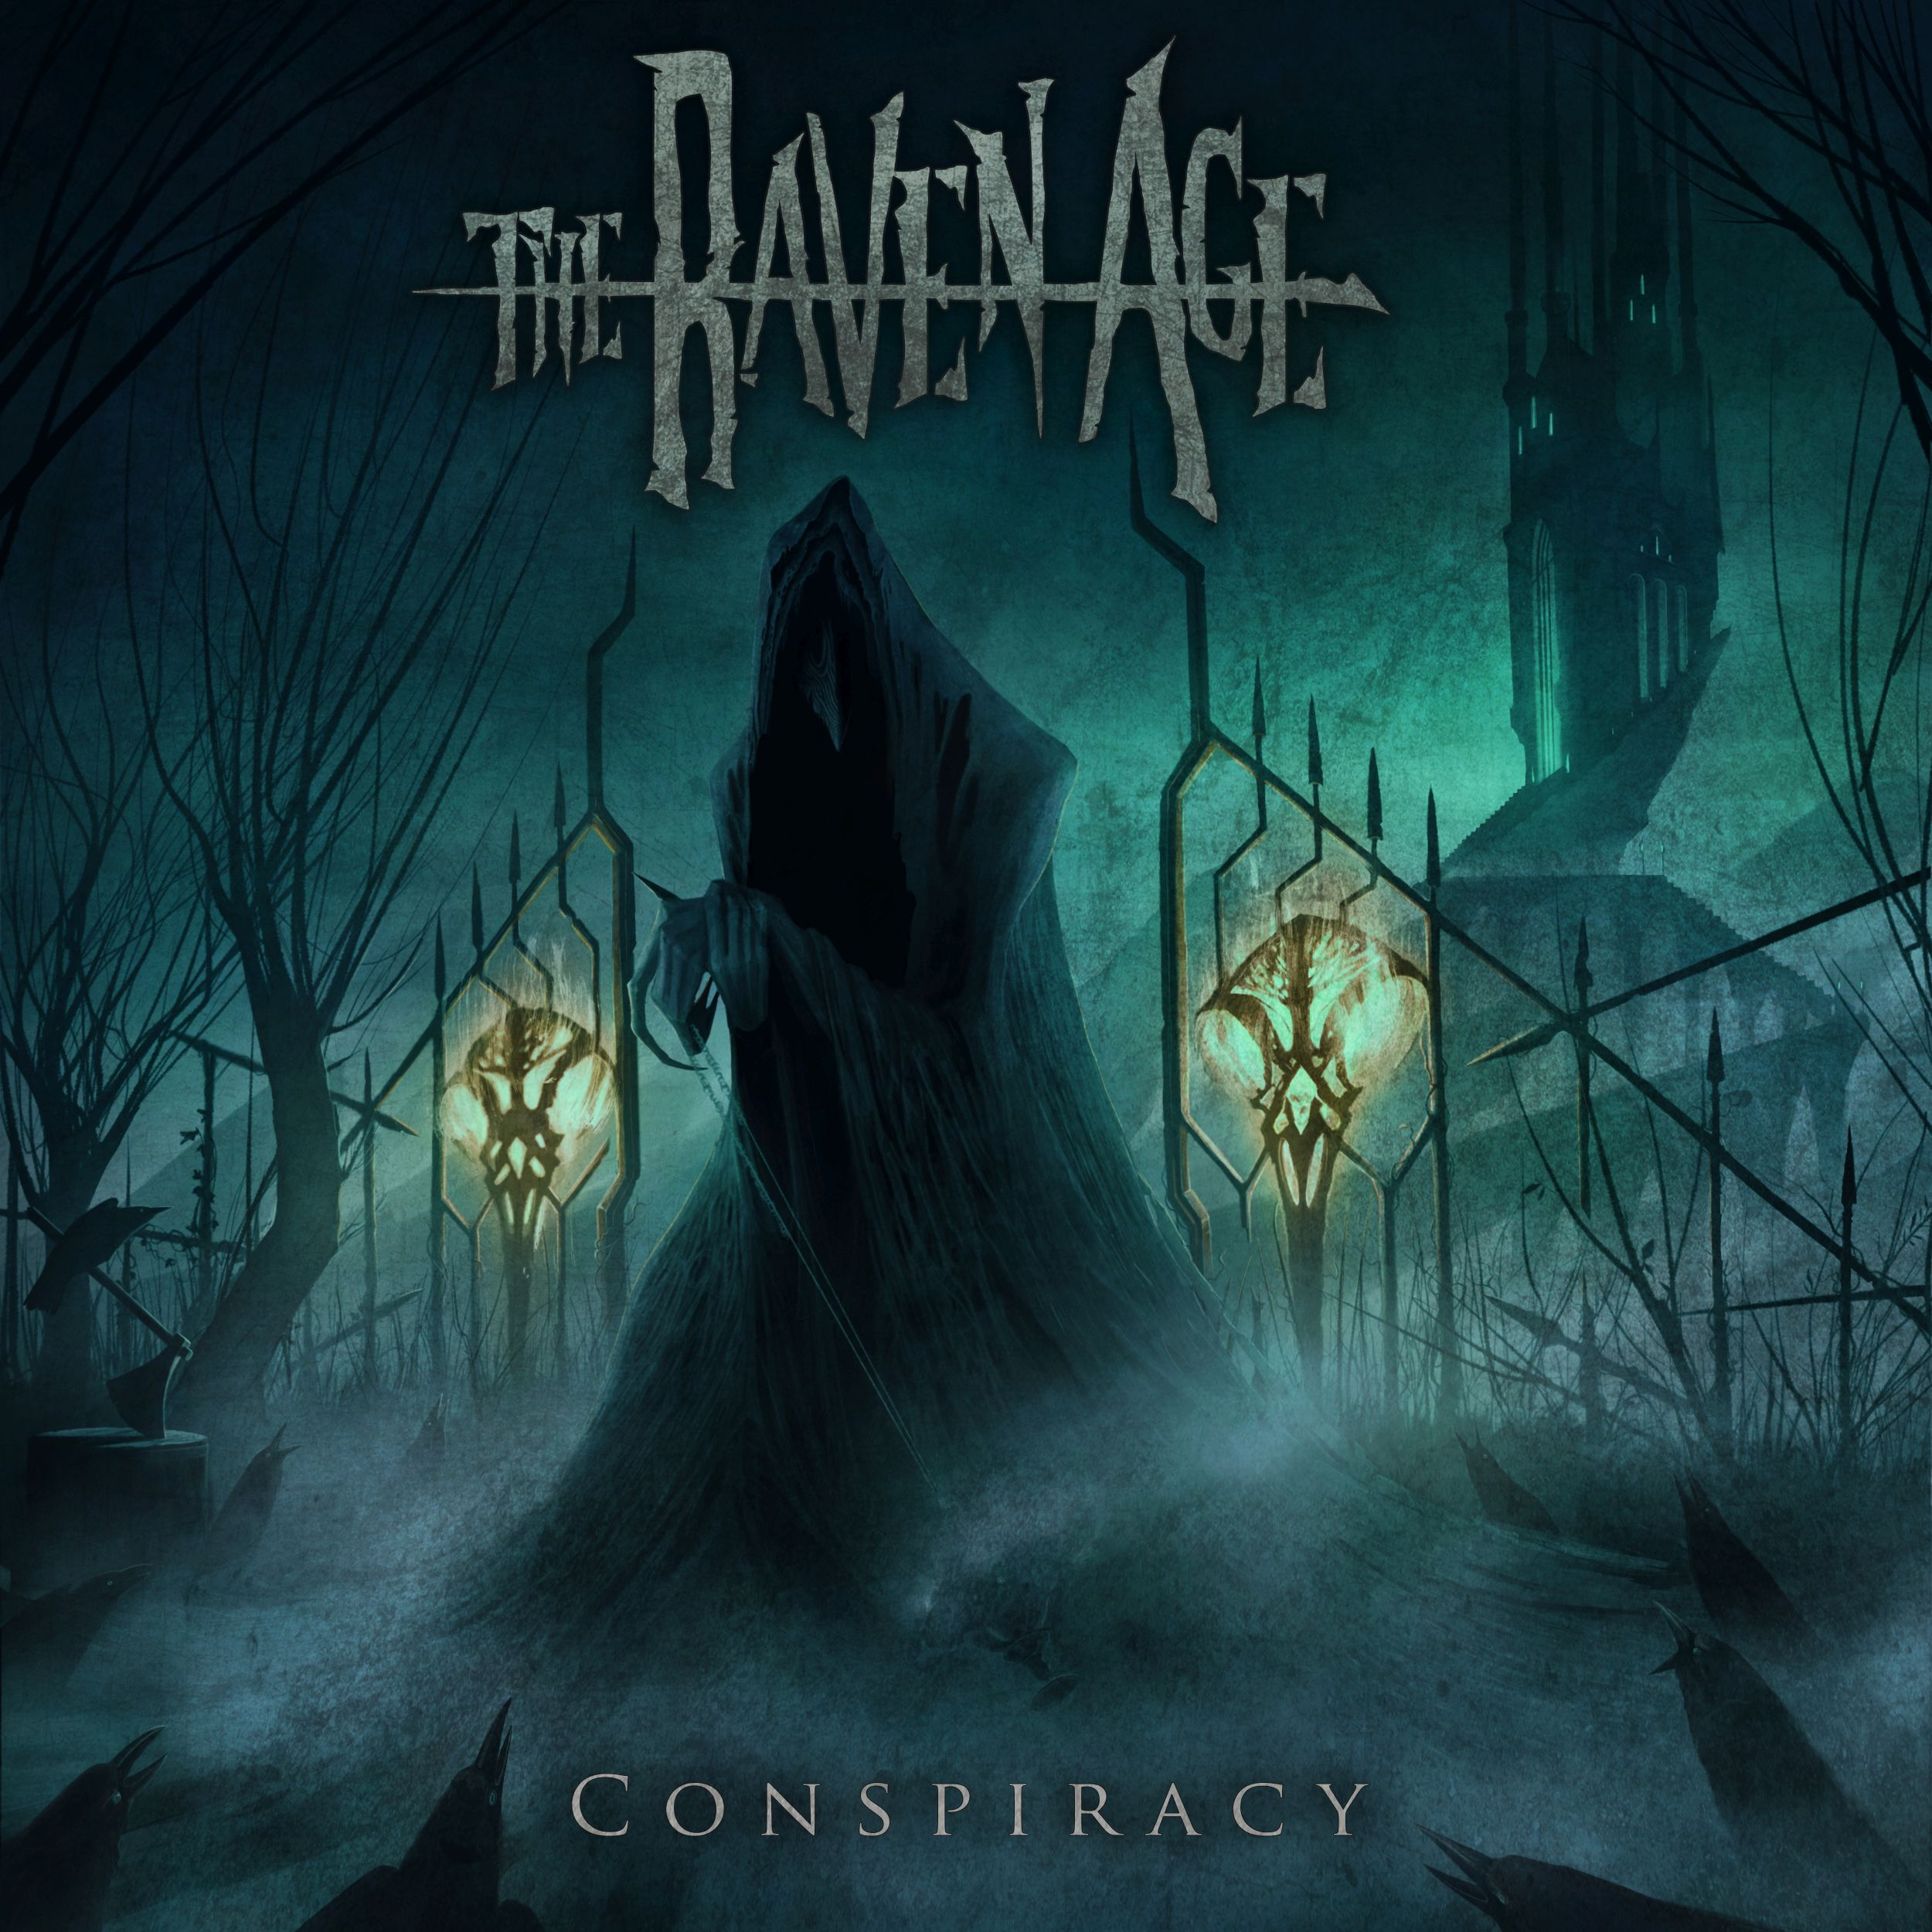 The_Raven_Age_Conspiracy_FINAL_